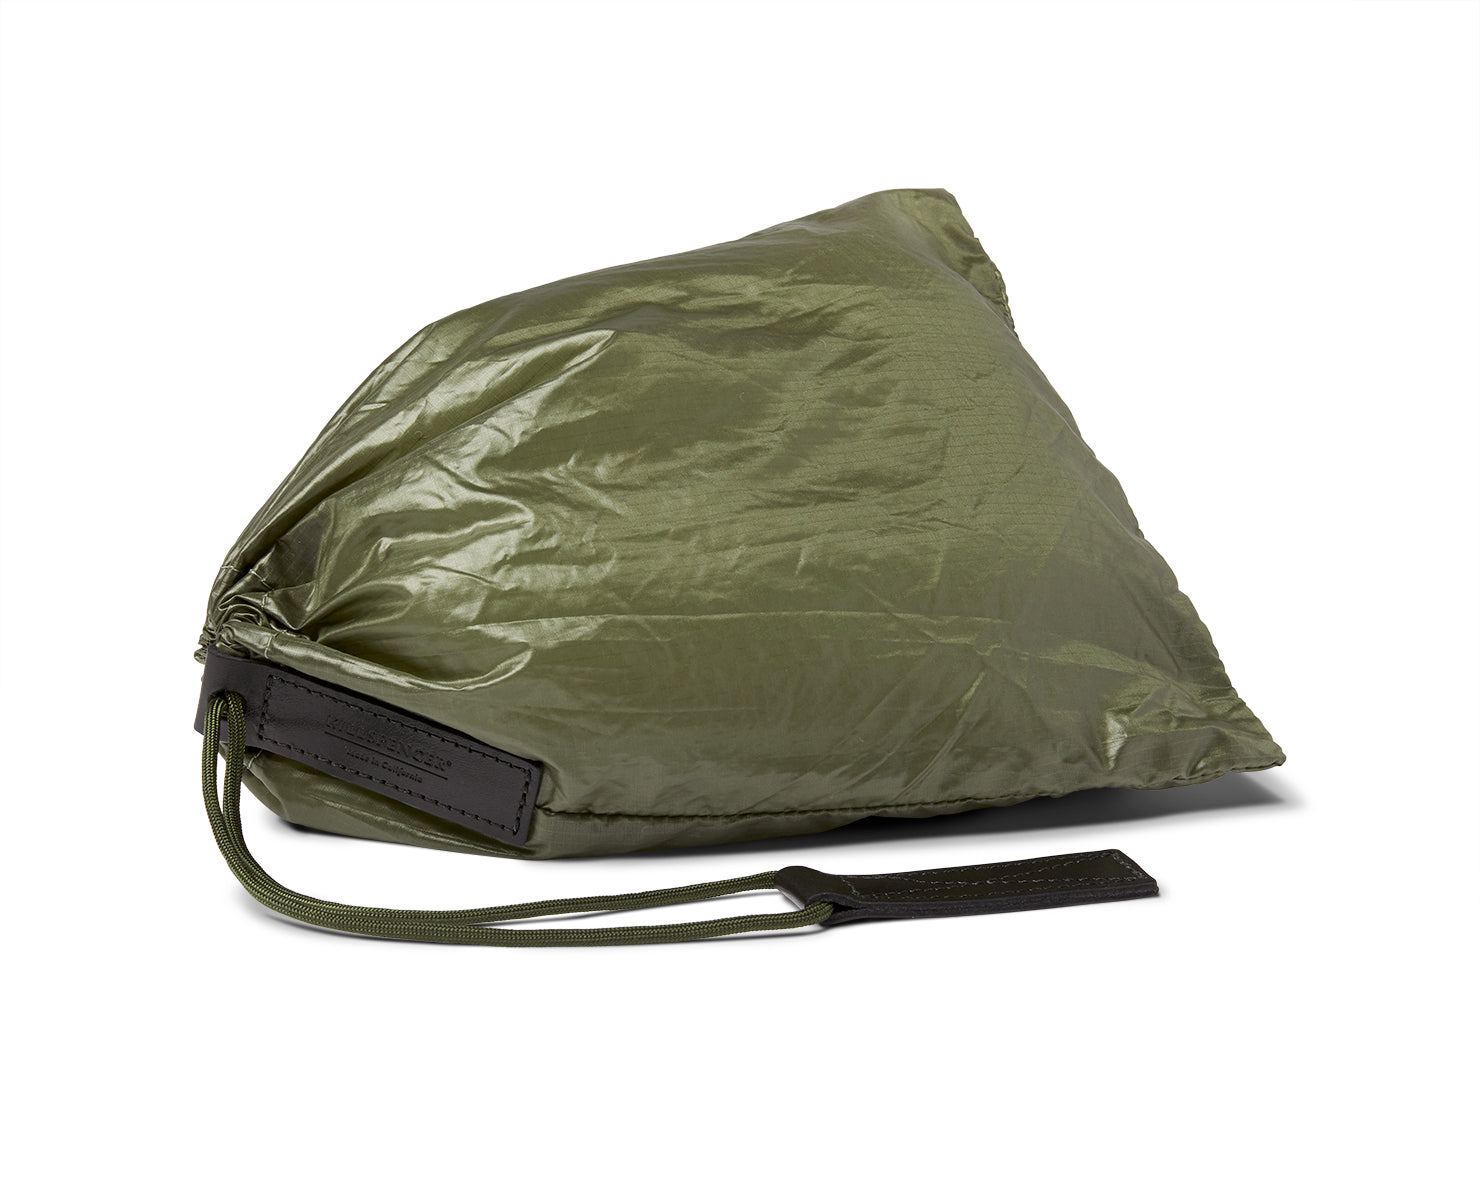 PARACHUTE BAG 2.0 - Large Accessory Bag | KILLSPENCER® - Olive Drab Parachute